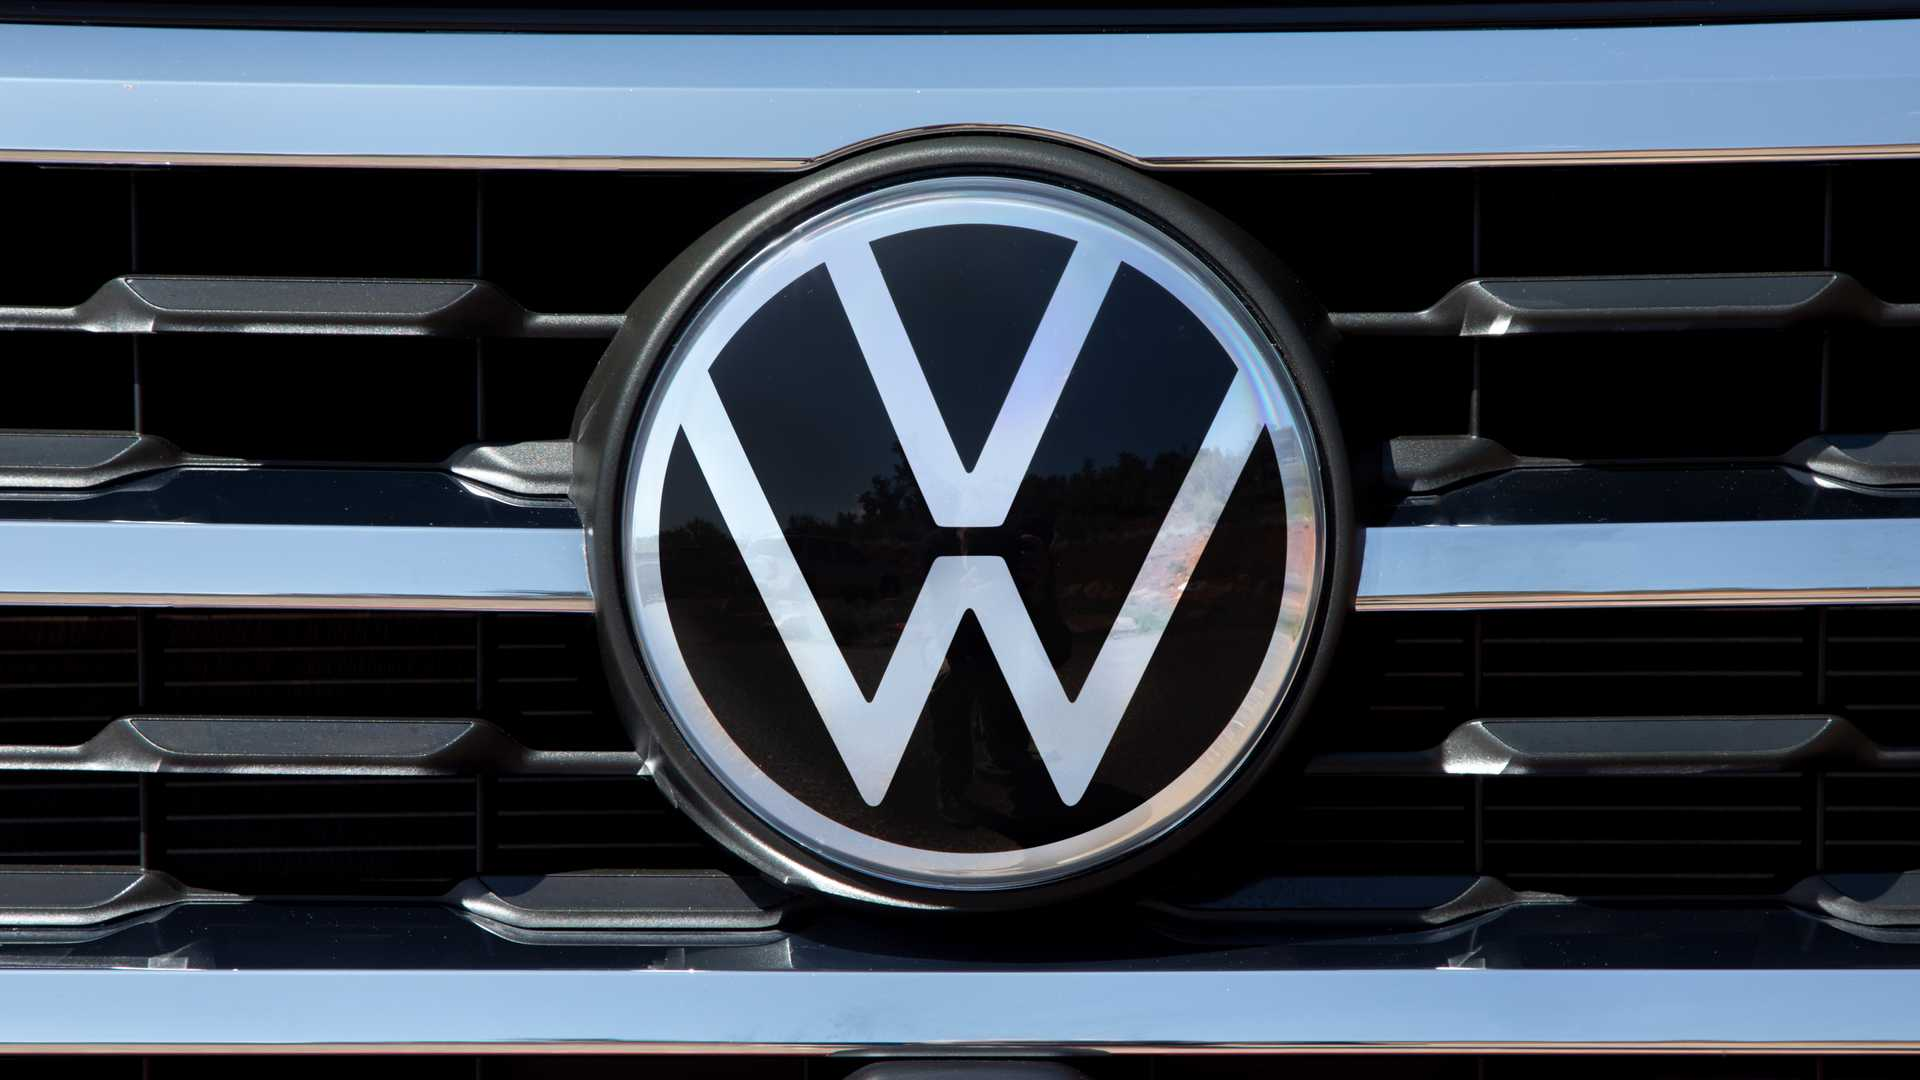 Here S What The New Volkswagen Logo Looks Like On A Grille